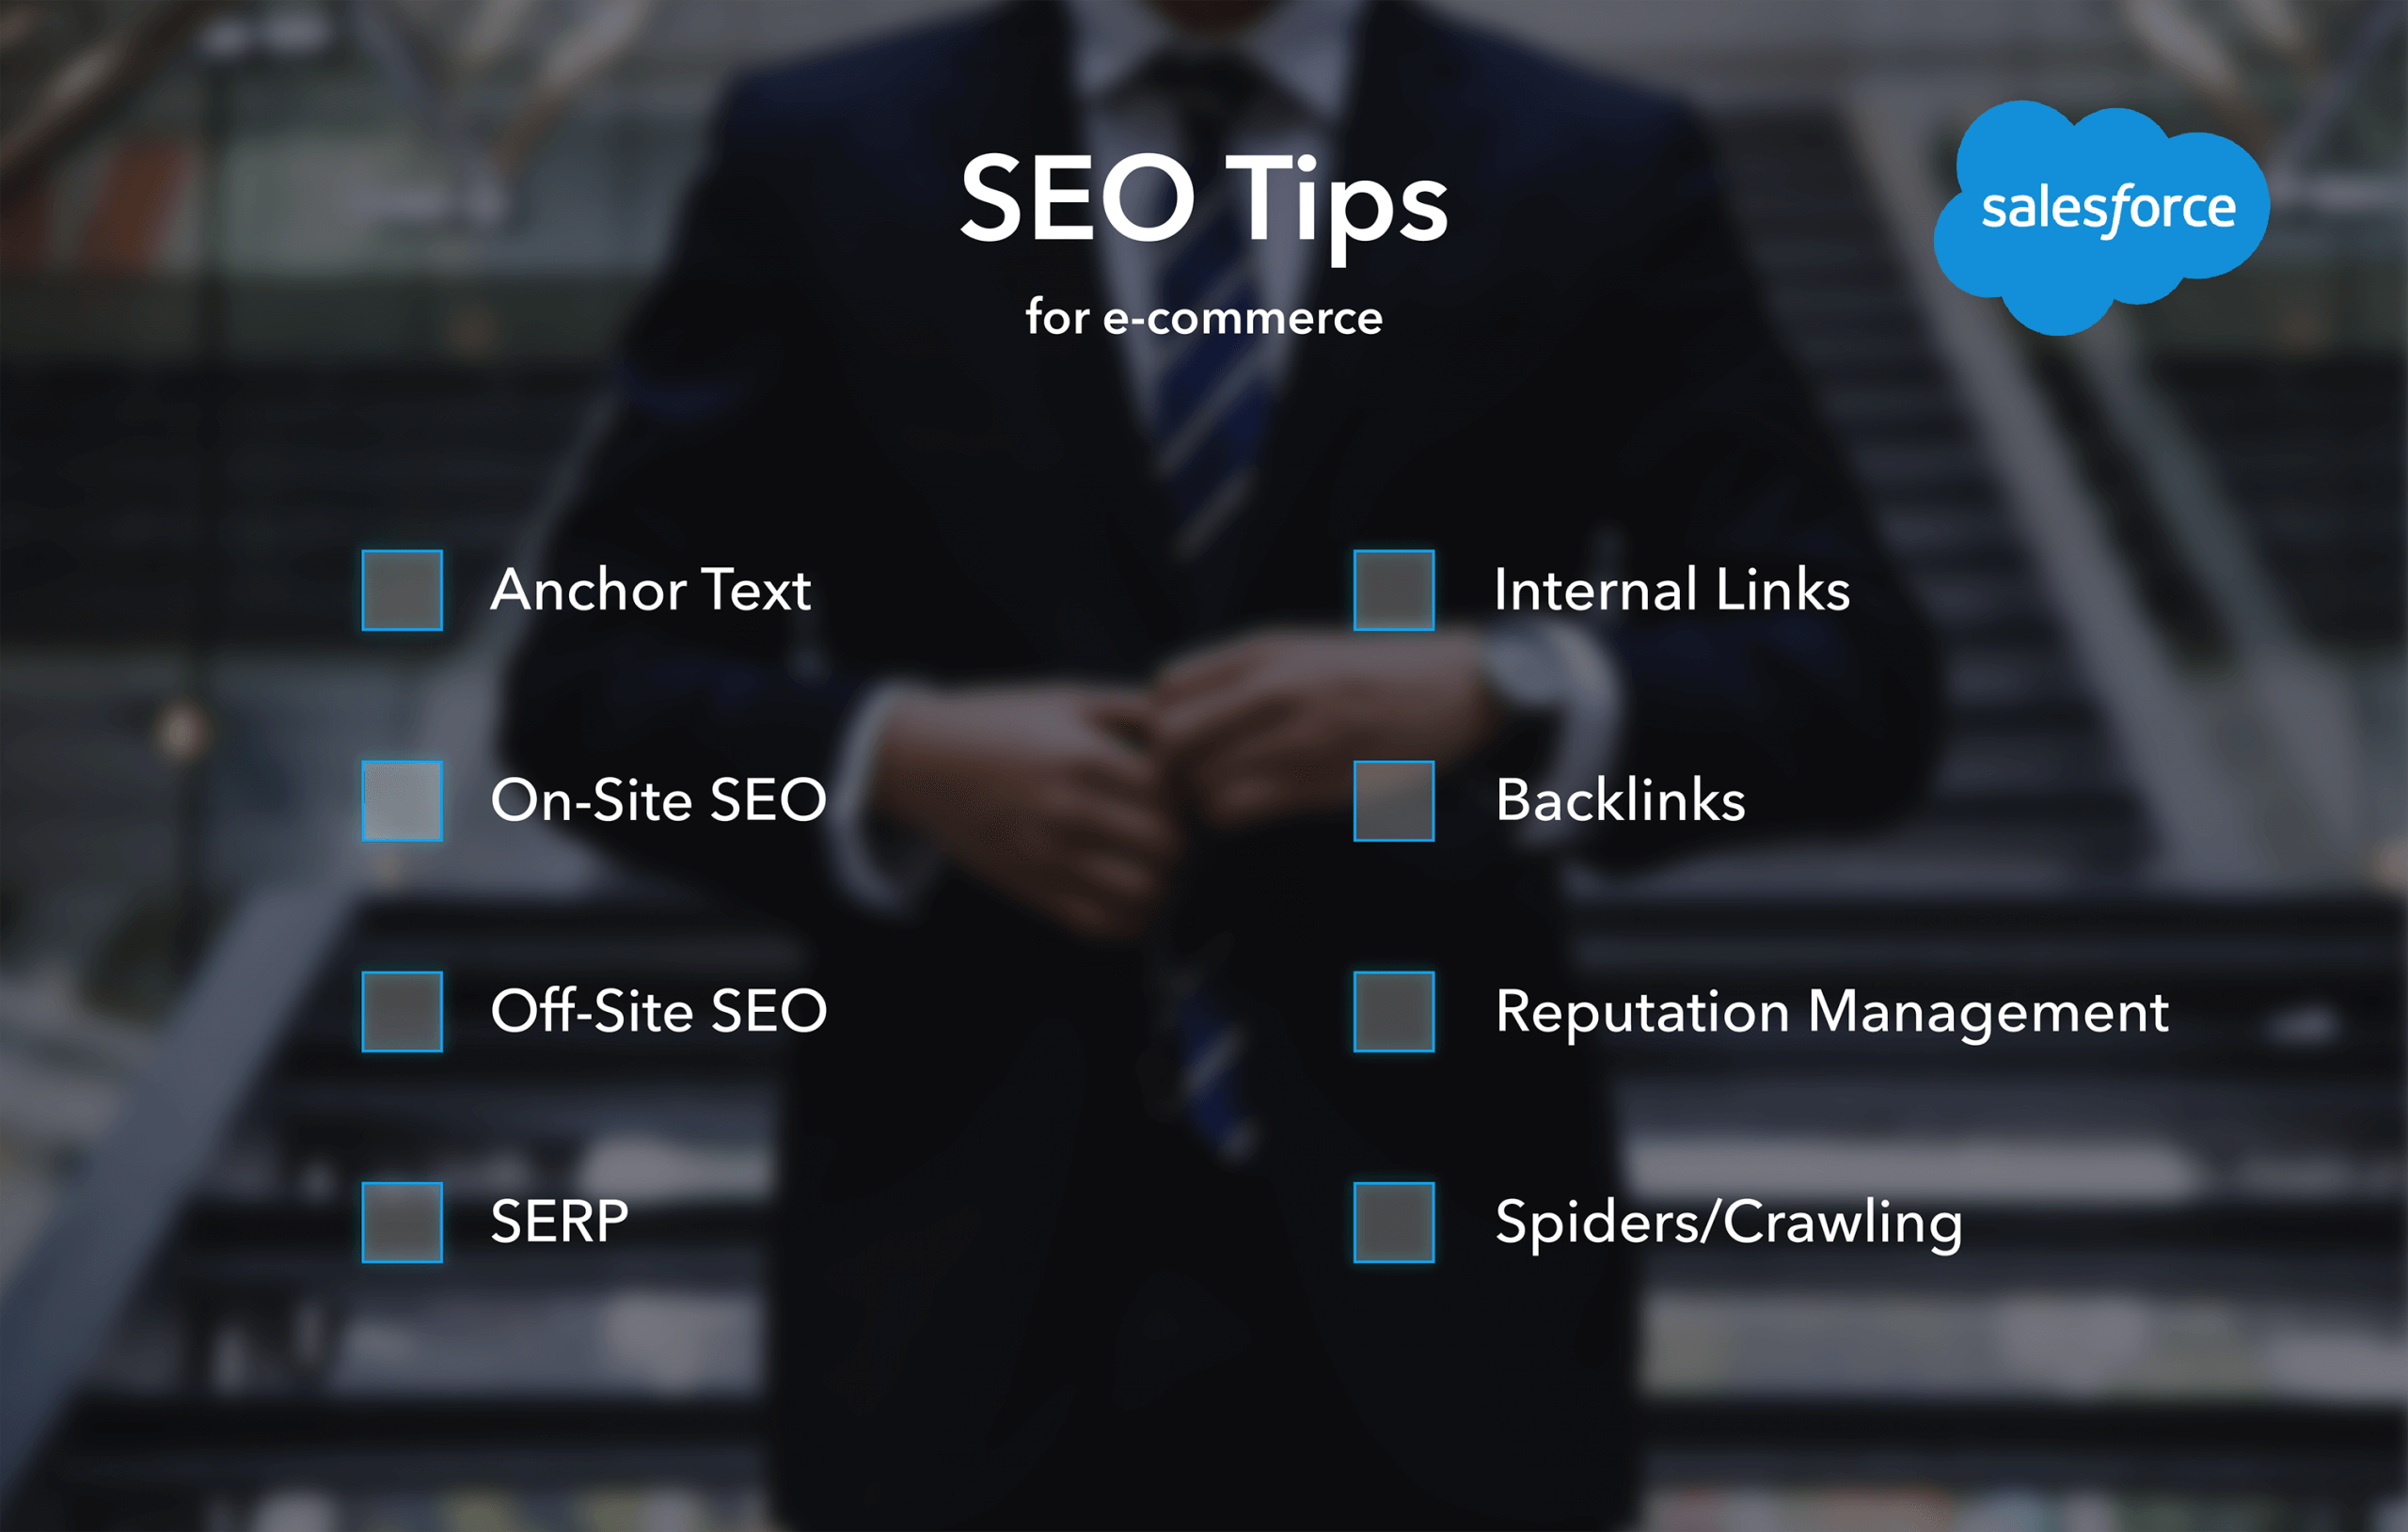 SEO tips for e-commerce